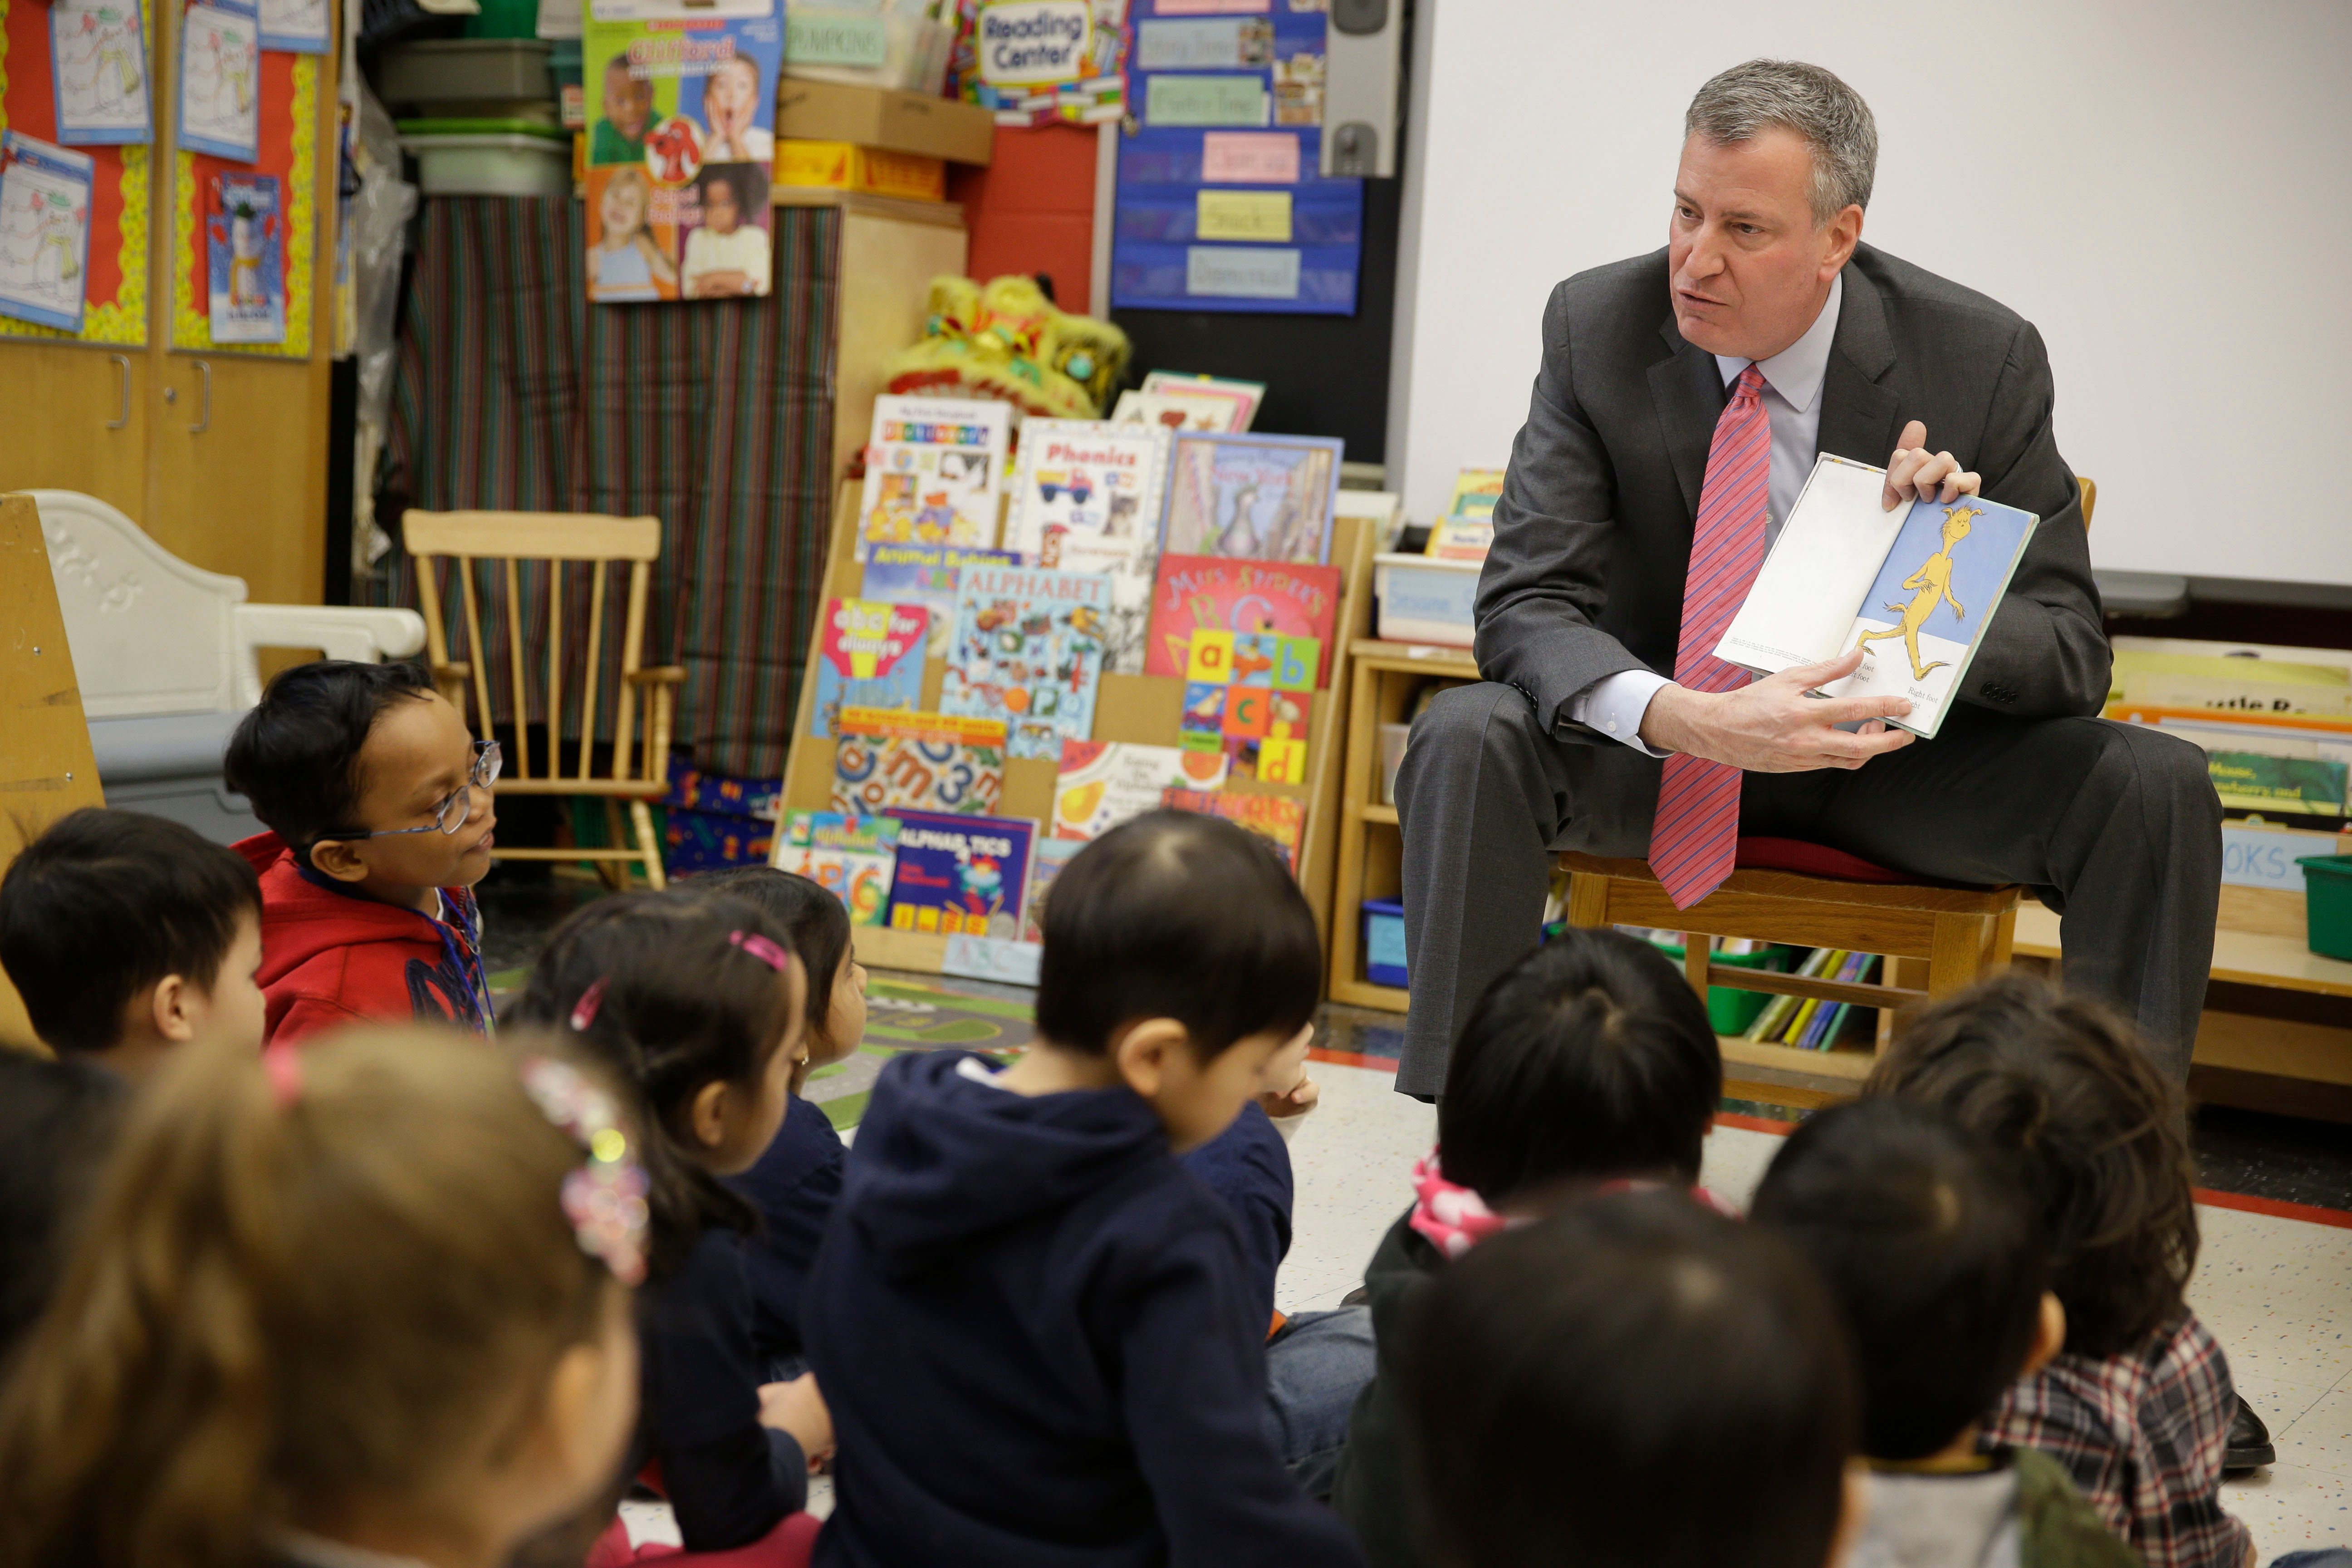 New York City Mayor Bill de Blasio reads to children in a pre-kindergarten class at P.S. 130 on February 25, 2014 in New York